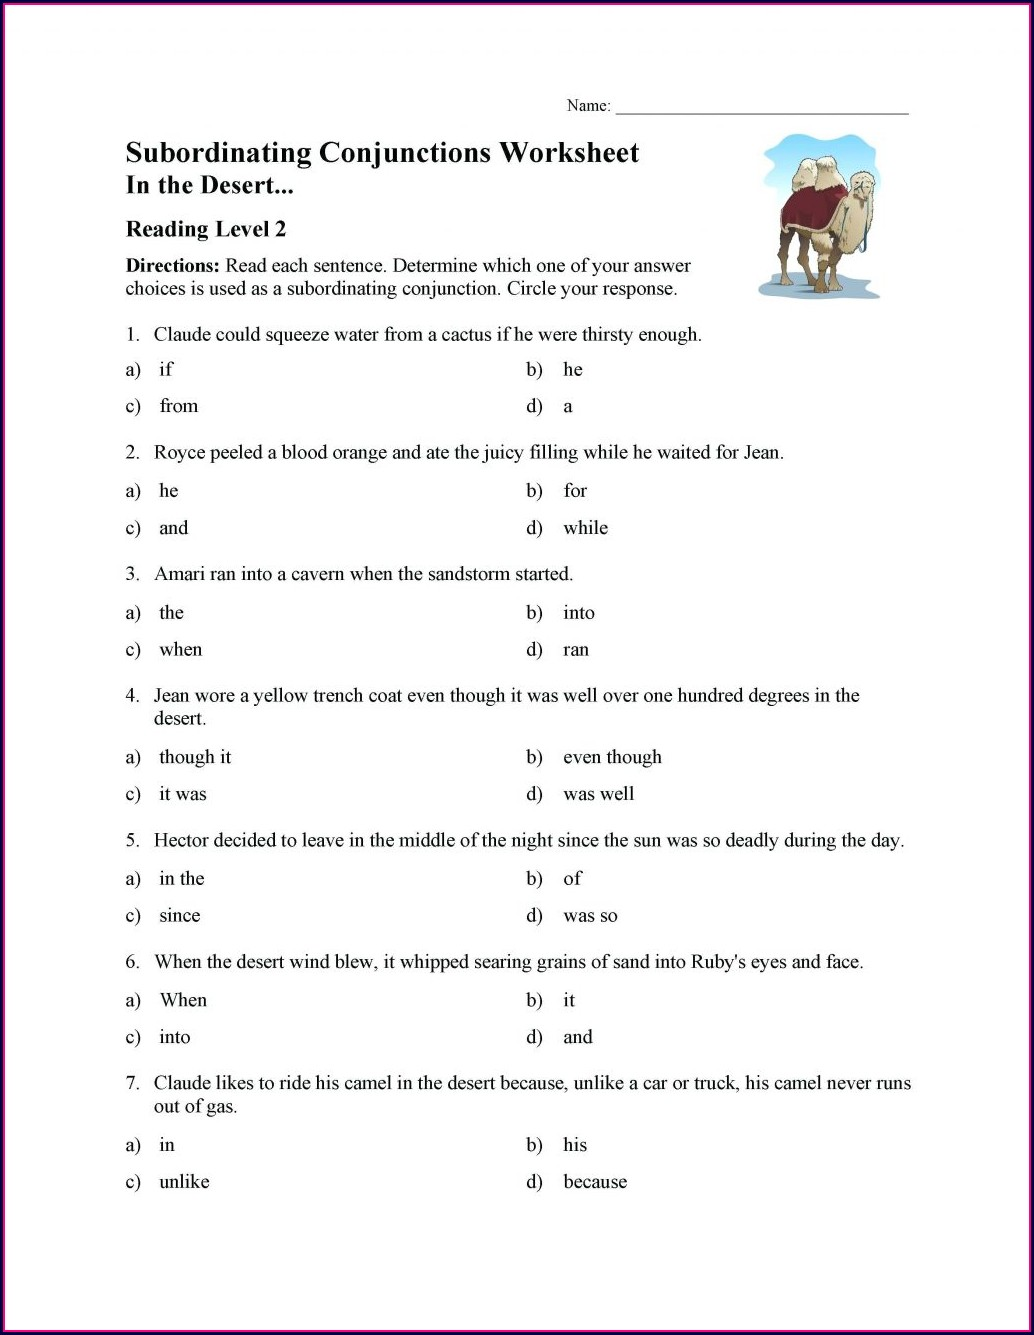 Conjunctions Worksheets For Grade 5 With Answers Pdf